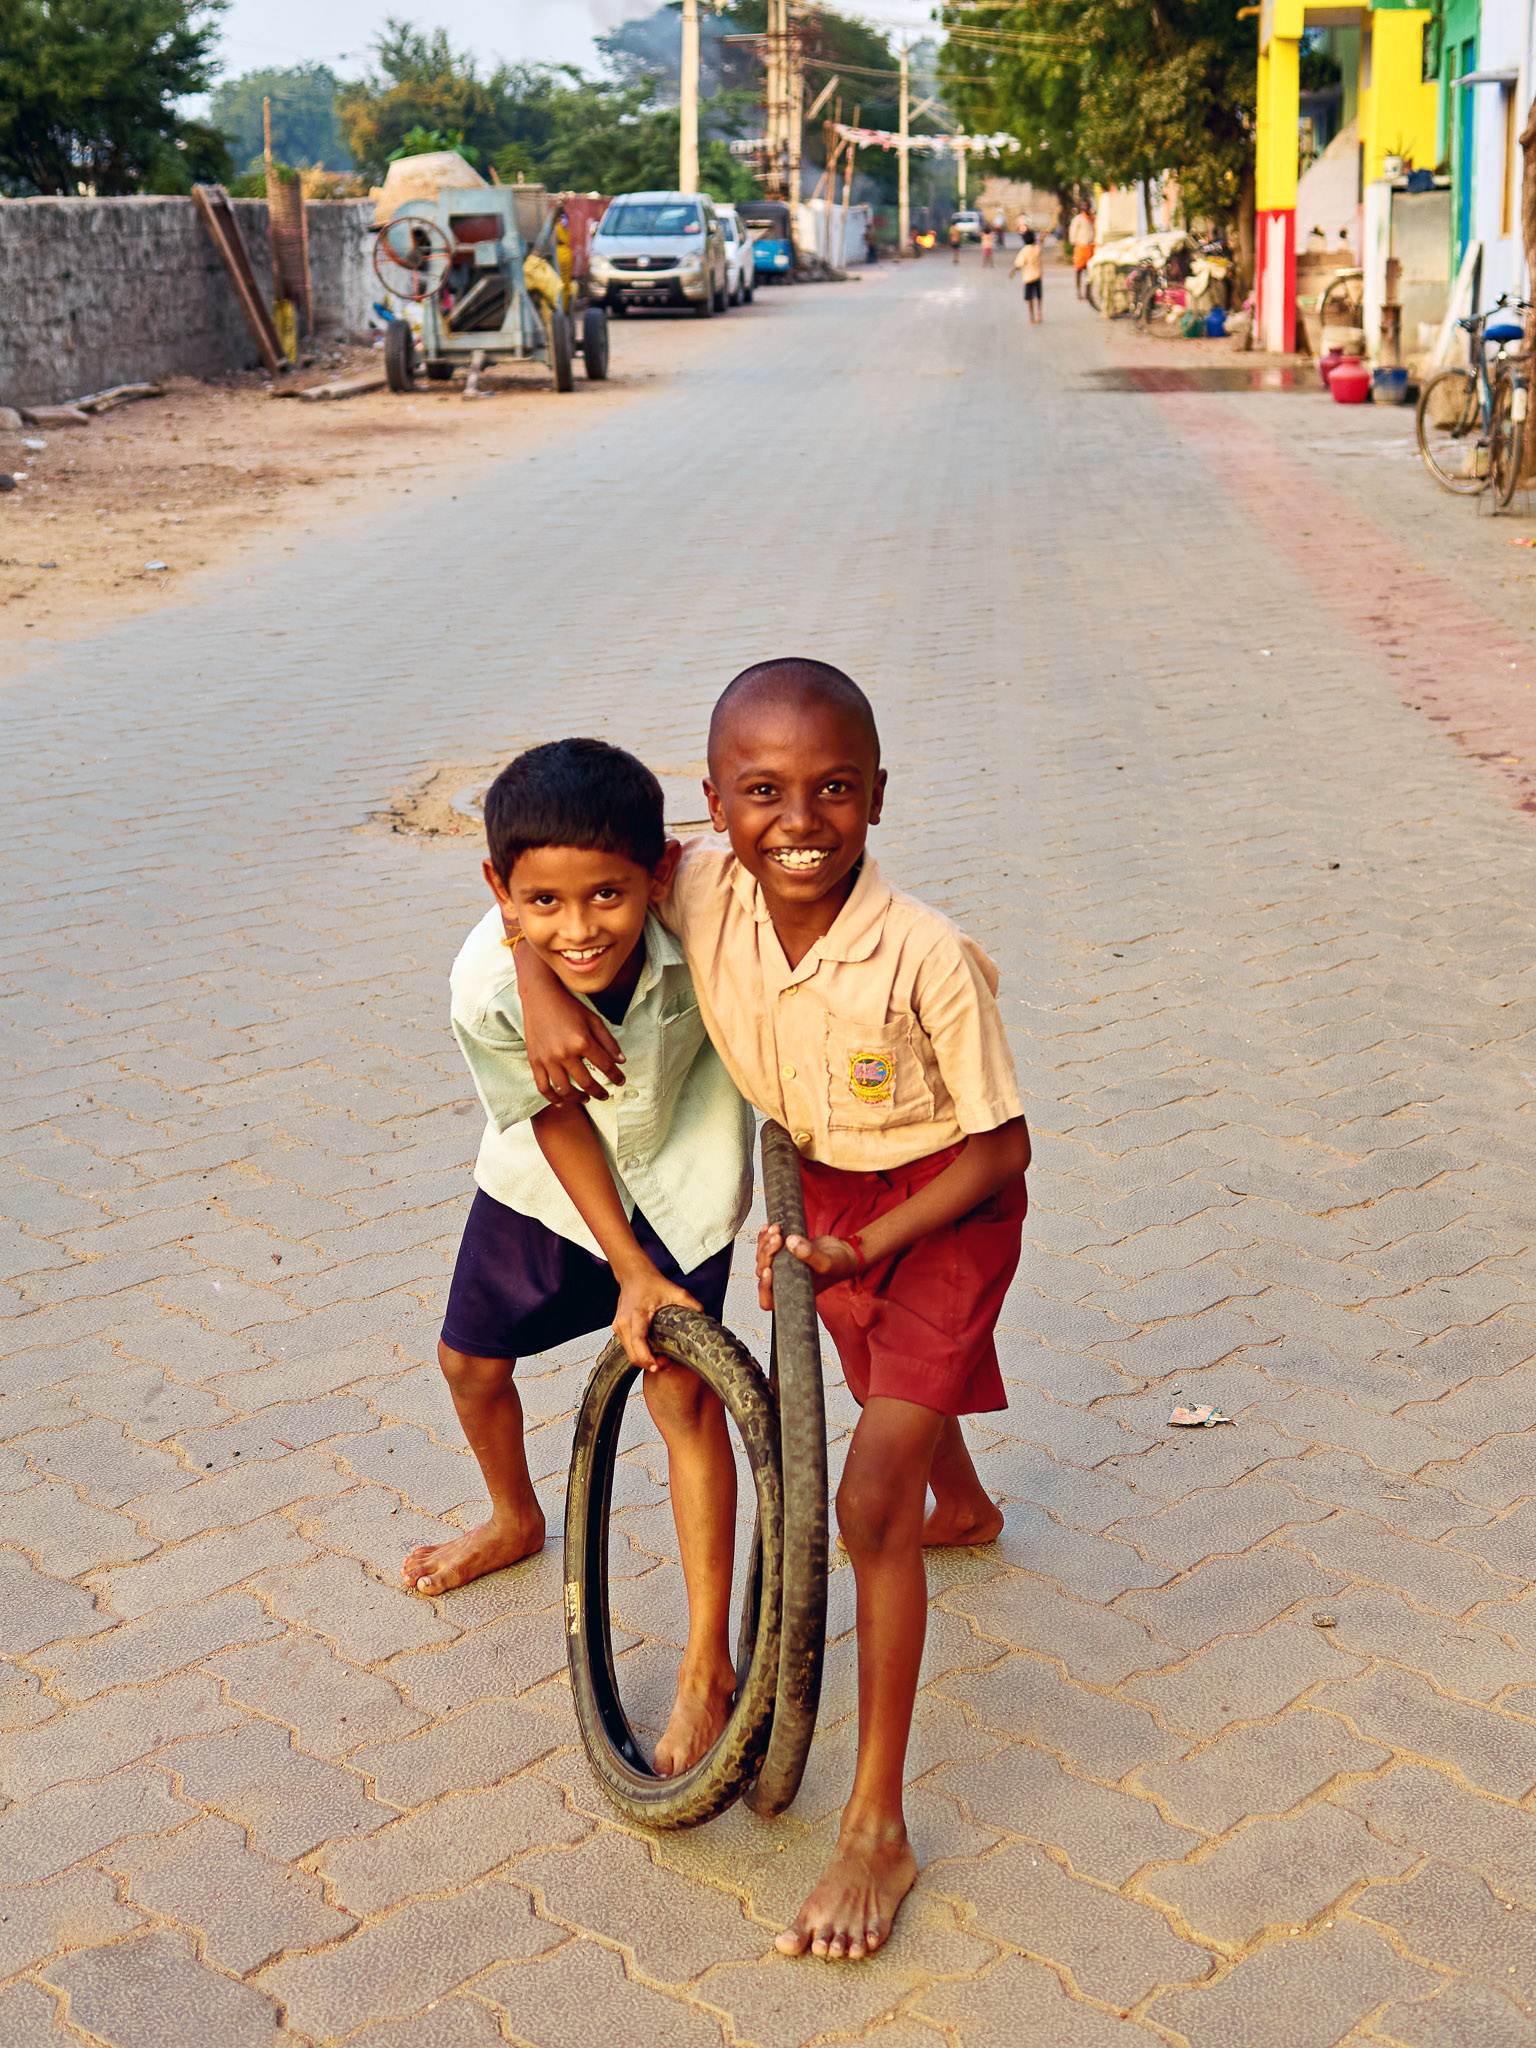 Young boys playing with worn out cycle tyres in the street, Virudhunagar, Tamil Nadu, India